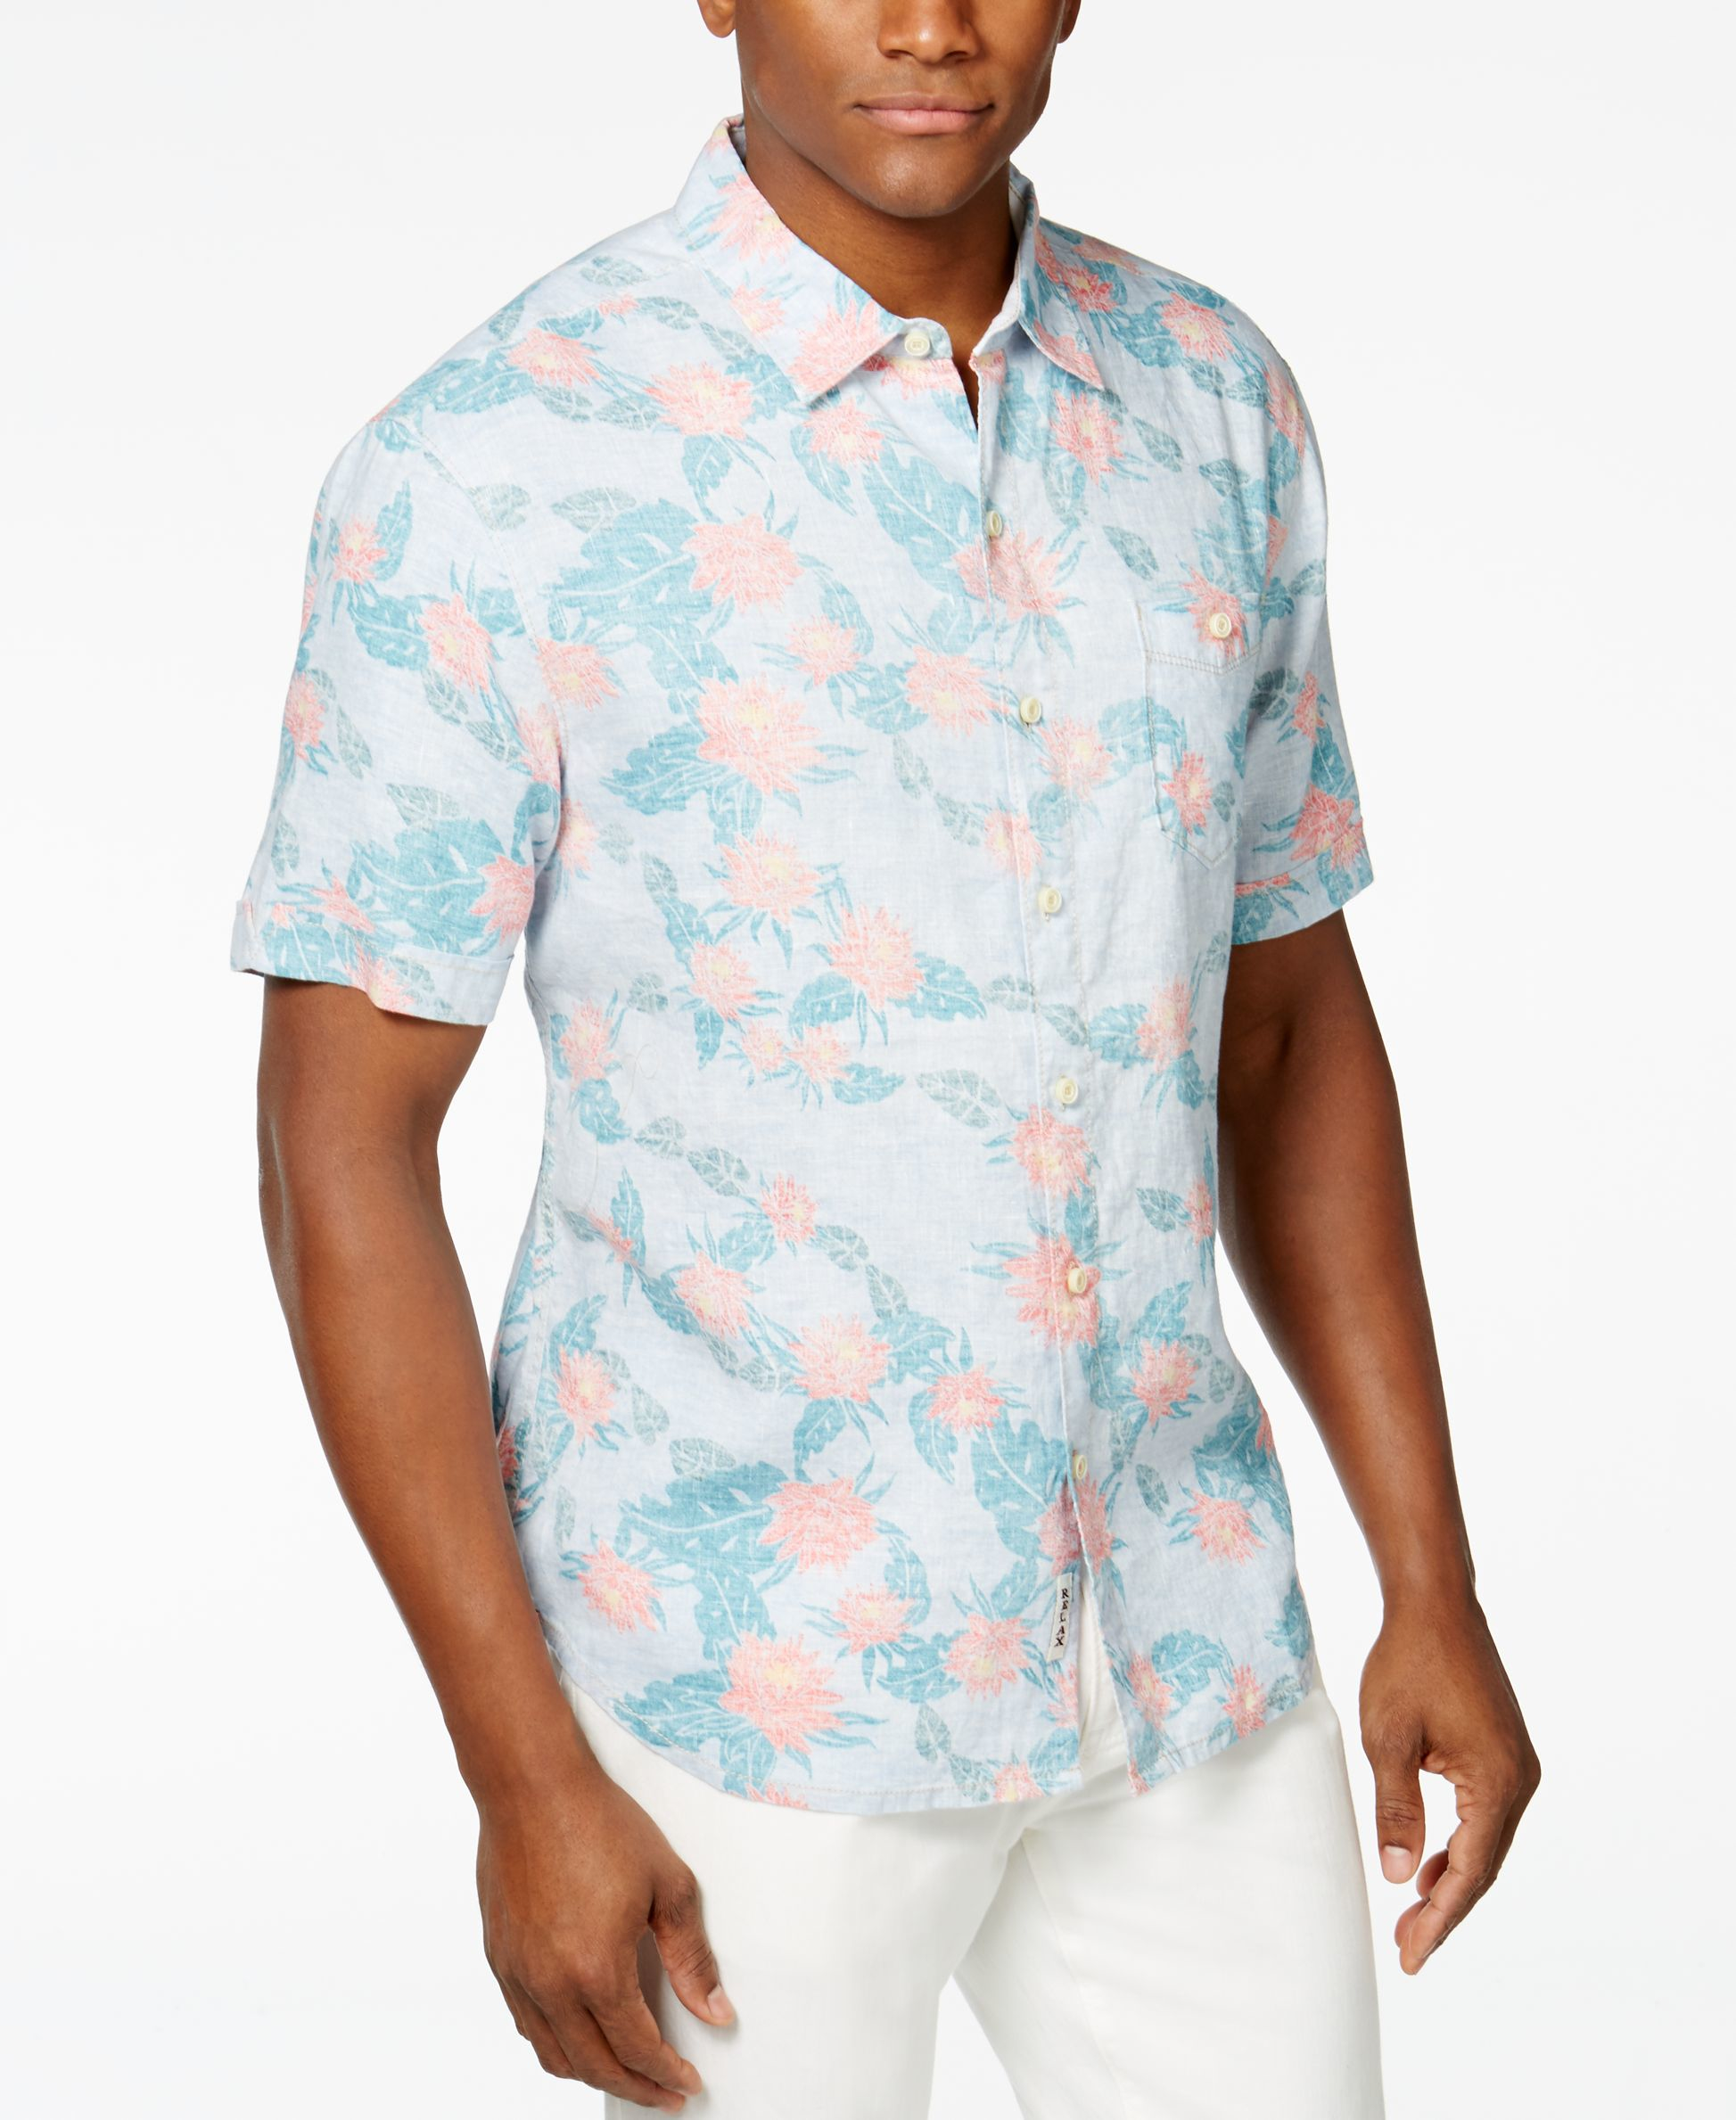 Uniqlo Mens Linen Shirt